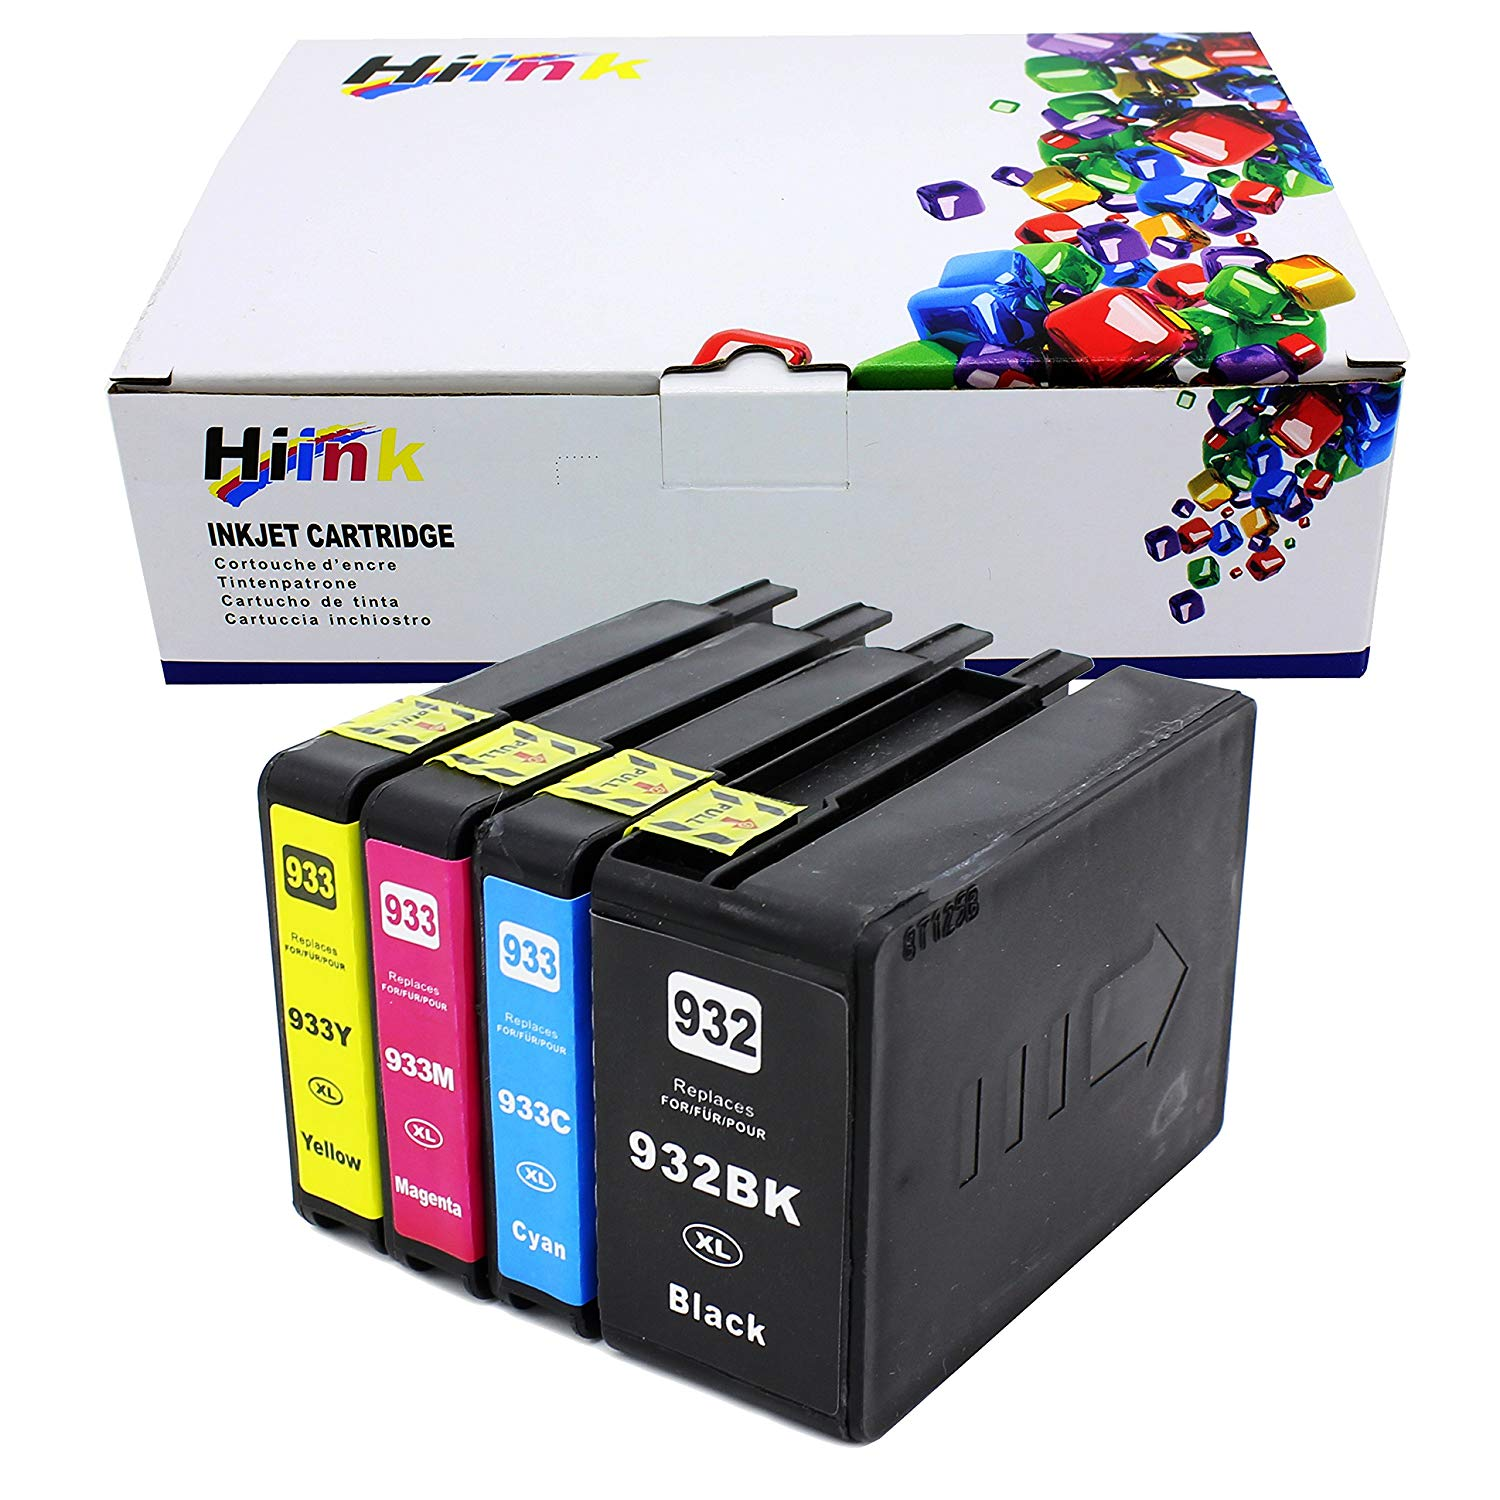 HIINK 4 Pack 932XL 933XL Ink Replacement For HP 932 933 Ink Cartridges Used In HP OfficeJet 6100 6600 6700 7110 7610 7612 7620 Printer(Black, Cyan, Magenta Yellow, 4-Pack)